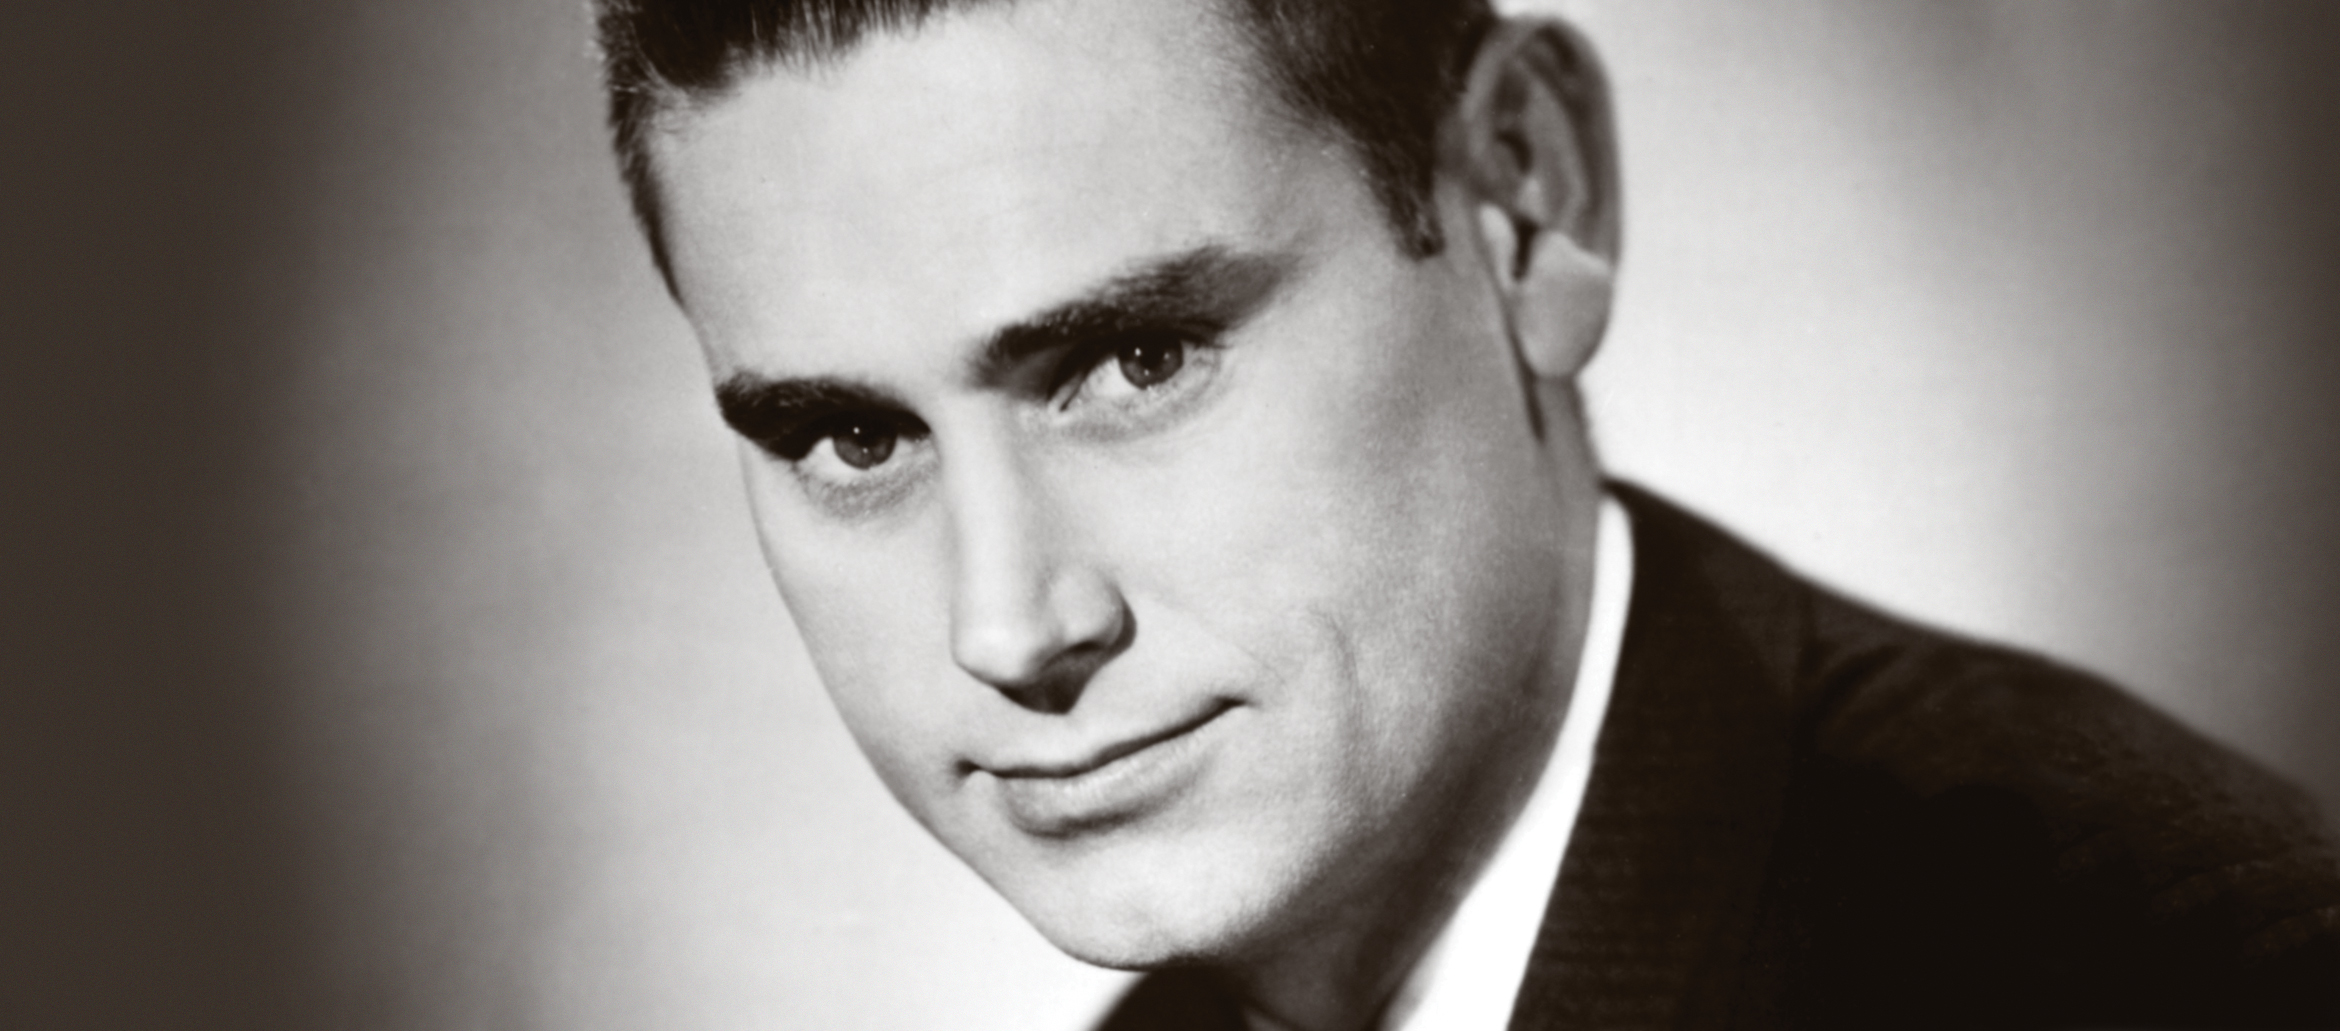 George Jones - Artist Image